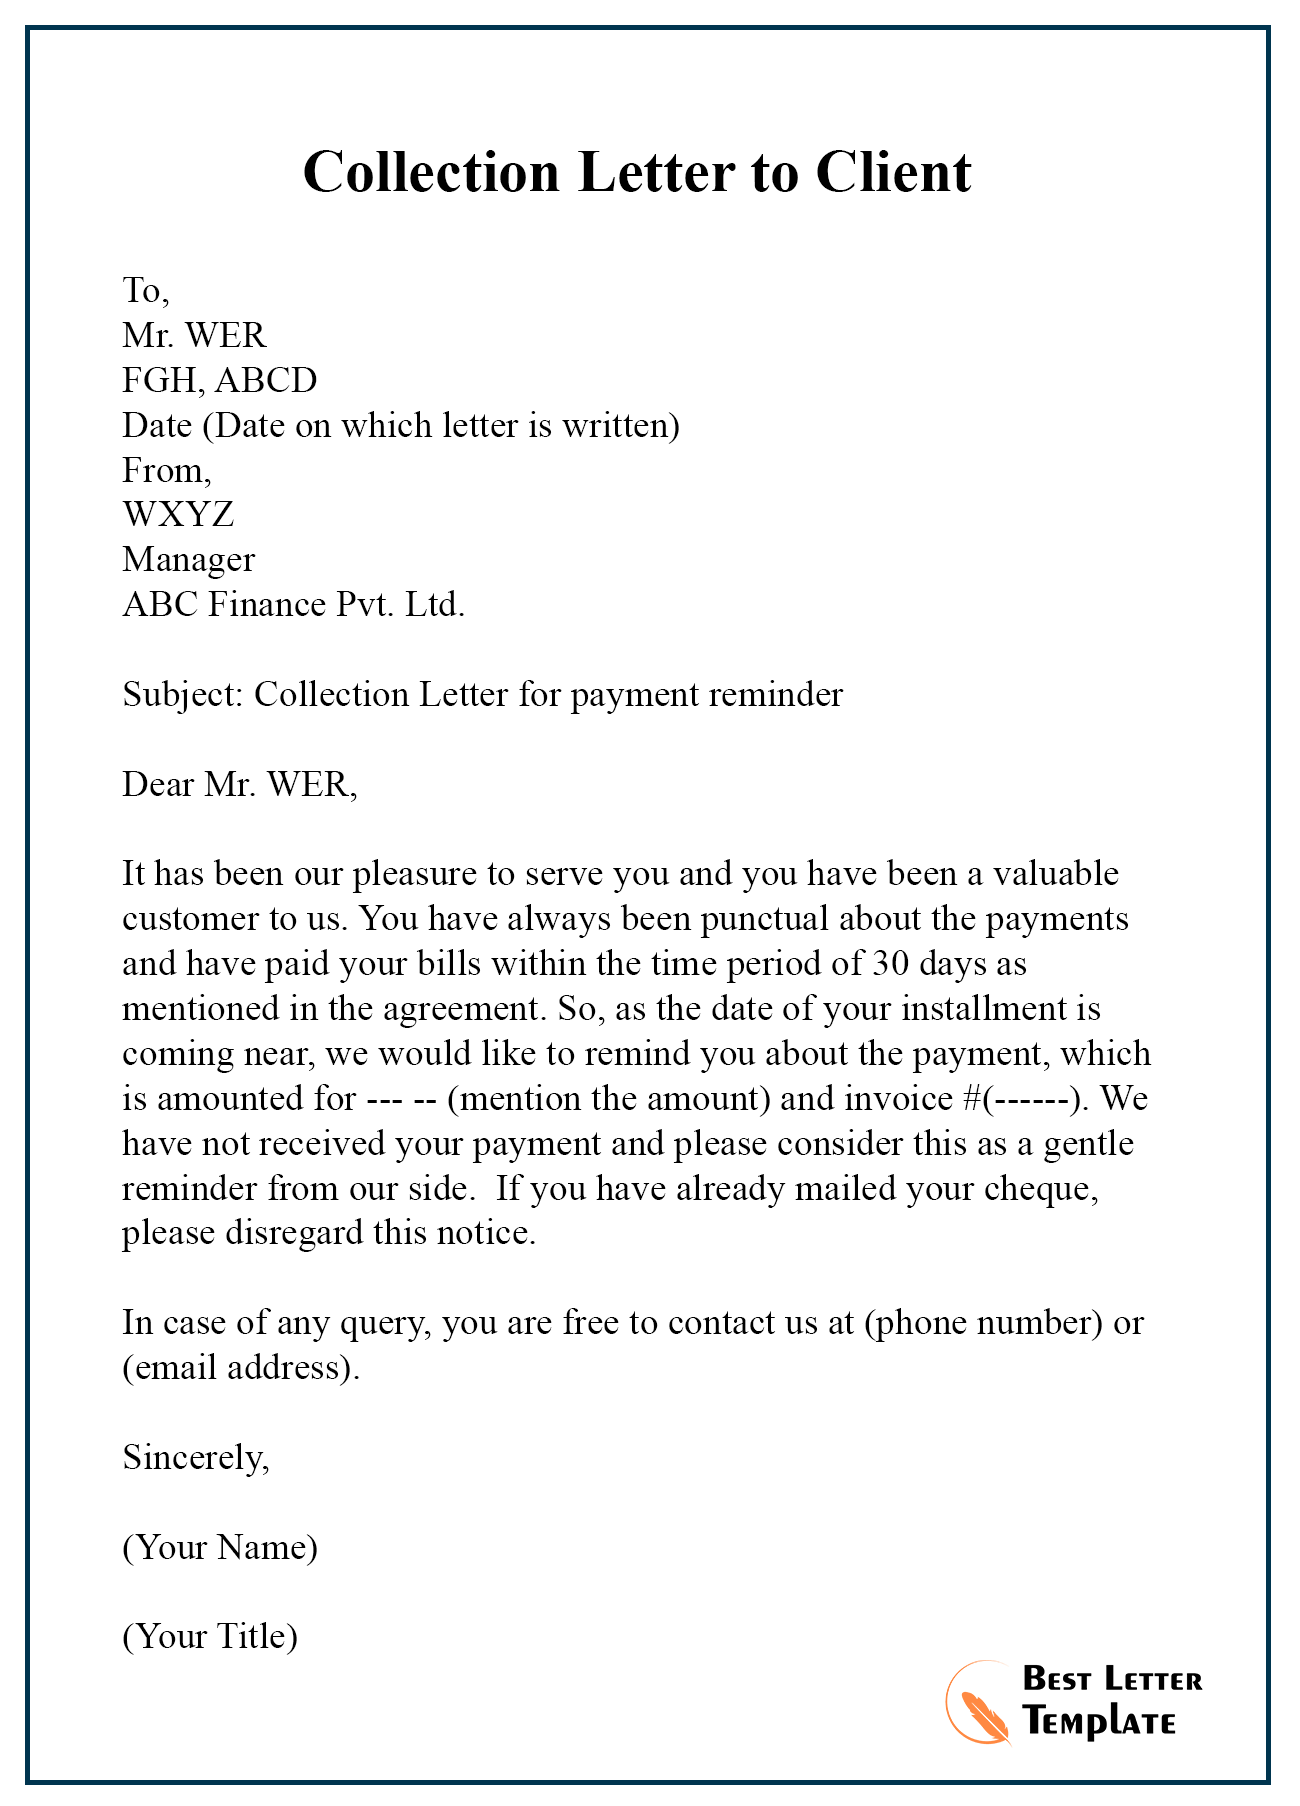 Collection Letter Template Free from bestlettertemplate.com